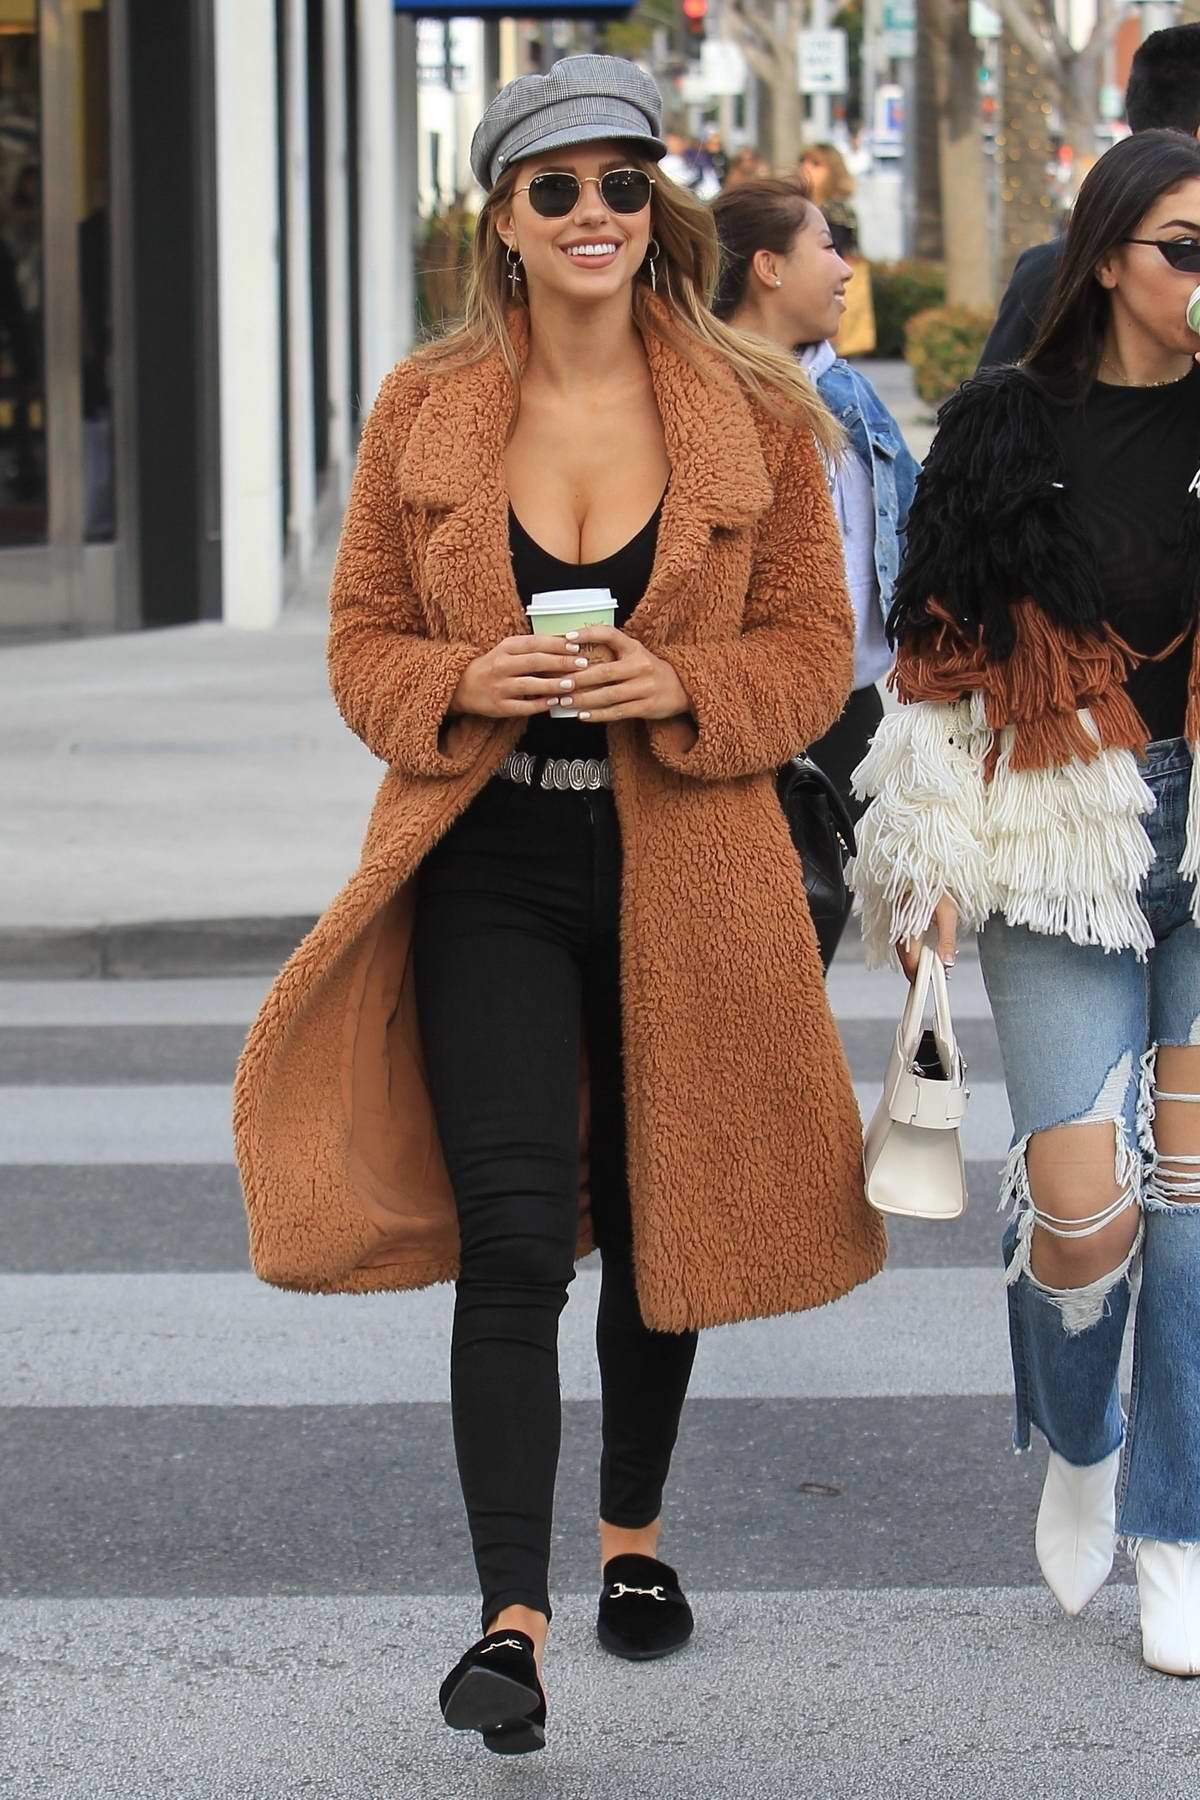 Kara Del Toro enjoys a coffee while out shopping with a friend in Beverly Hills, Los Angeles